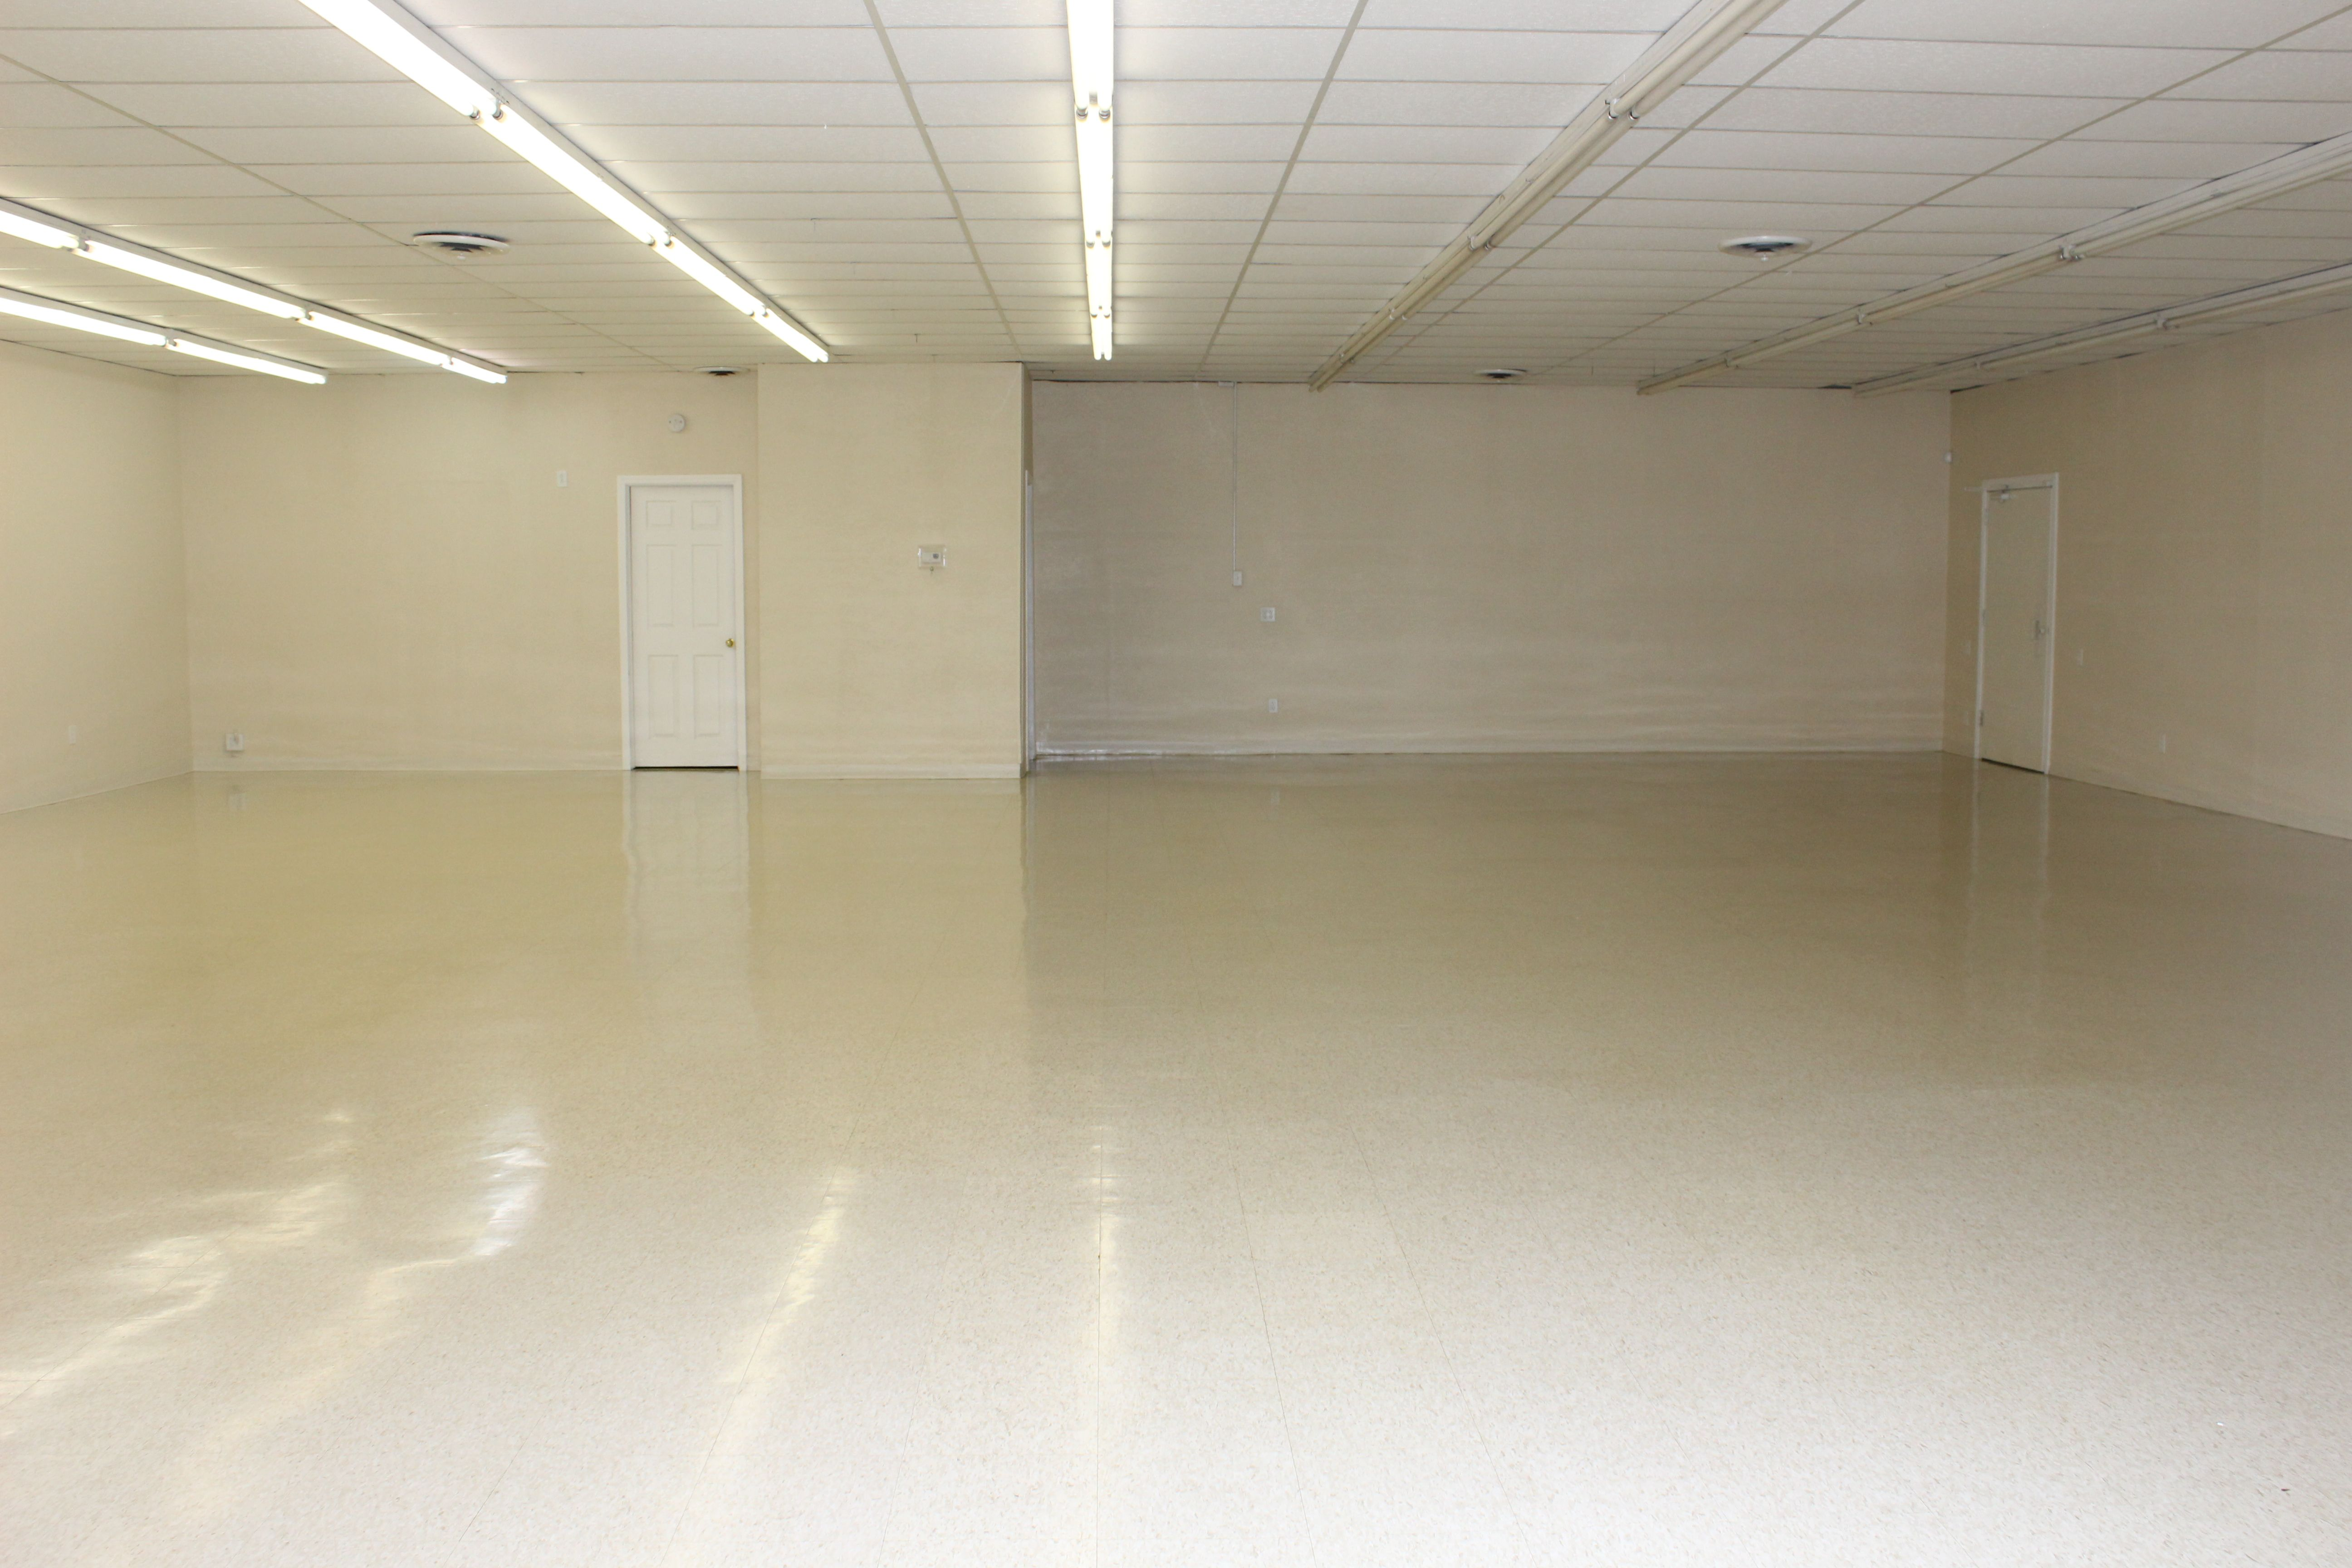 3 000 Sq Ft Commercial Space For Rent Great For Retail Business Services Or Church Services Co Commercial Space For Rent Commercial Rental Space Common Area